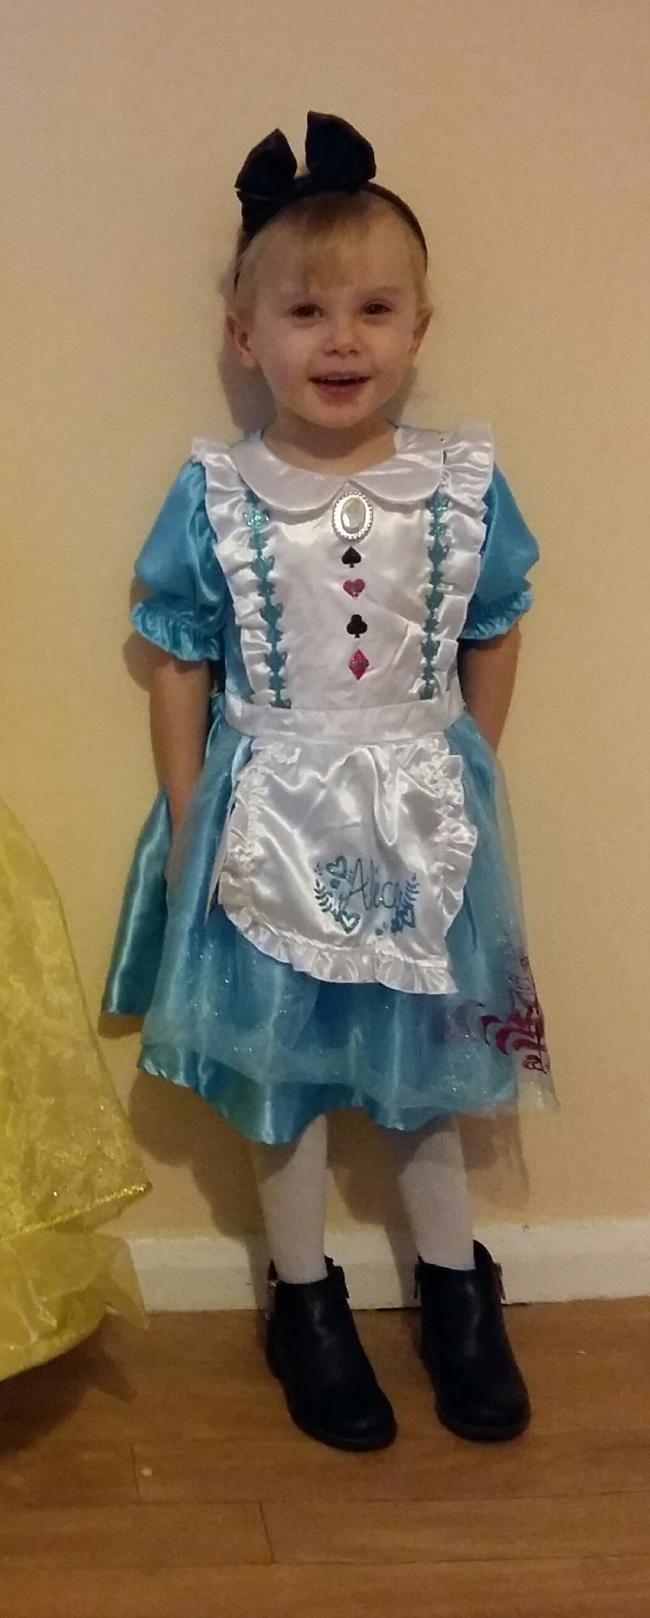 Lily topham age 3 dressed as alice